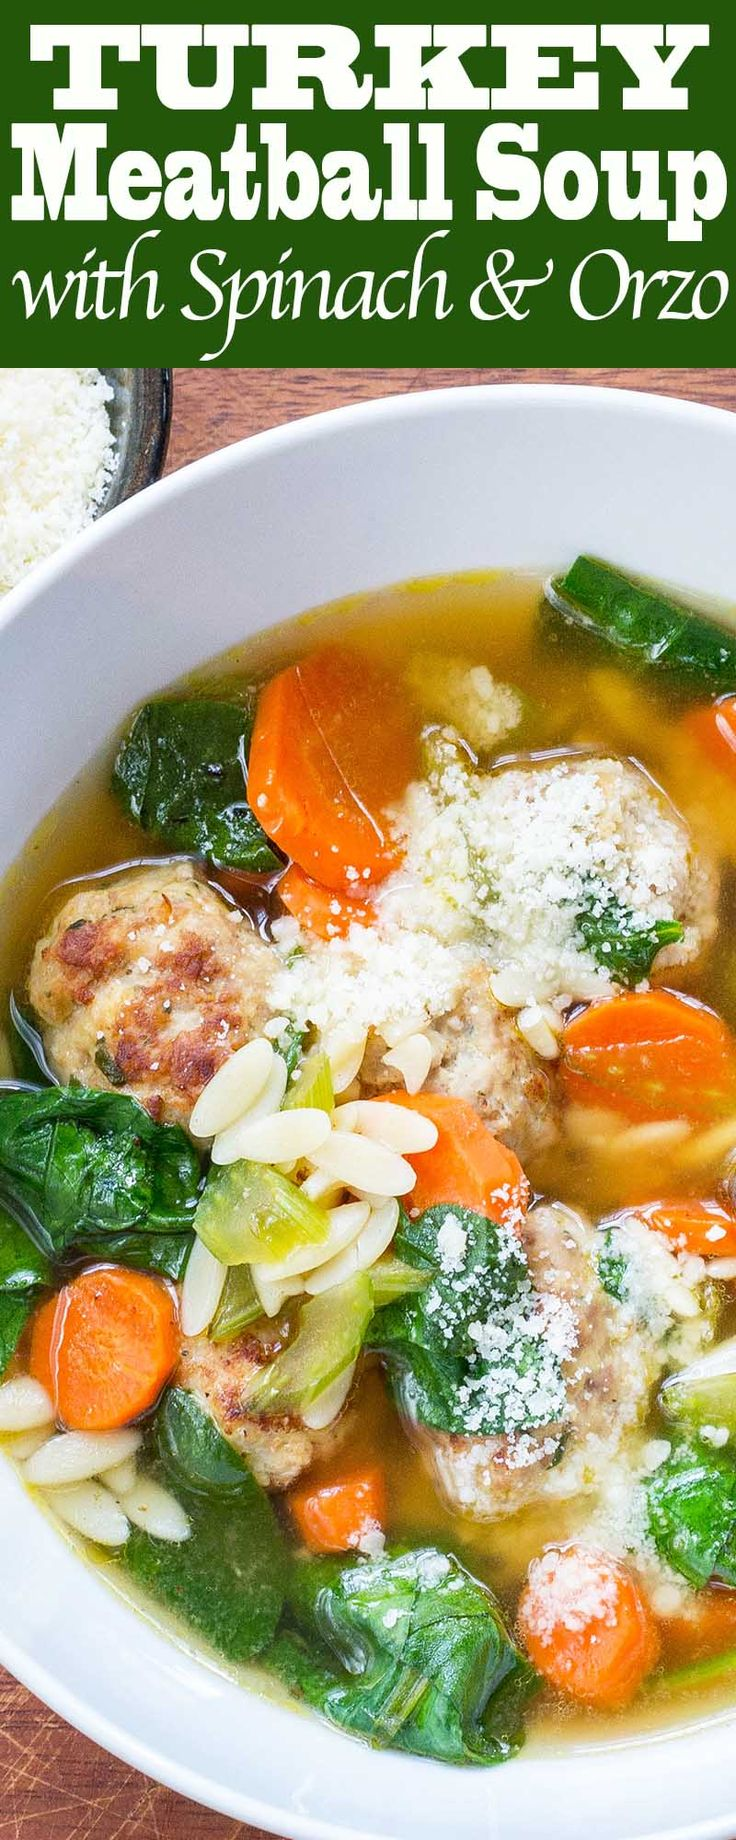 Turkey meatballs in an easy soup with spinach and orzo! Make and freeze the meatballs for a quick weeknight meal whenever you need one!